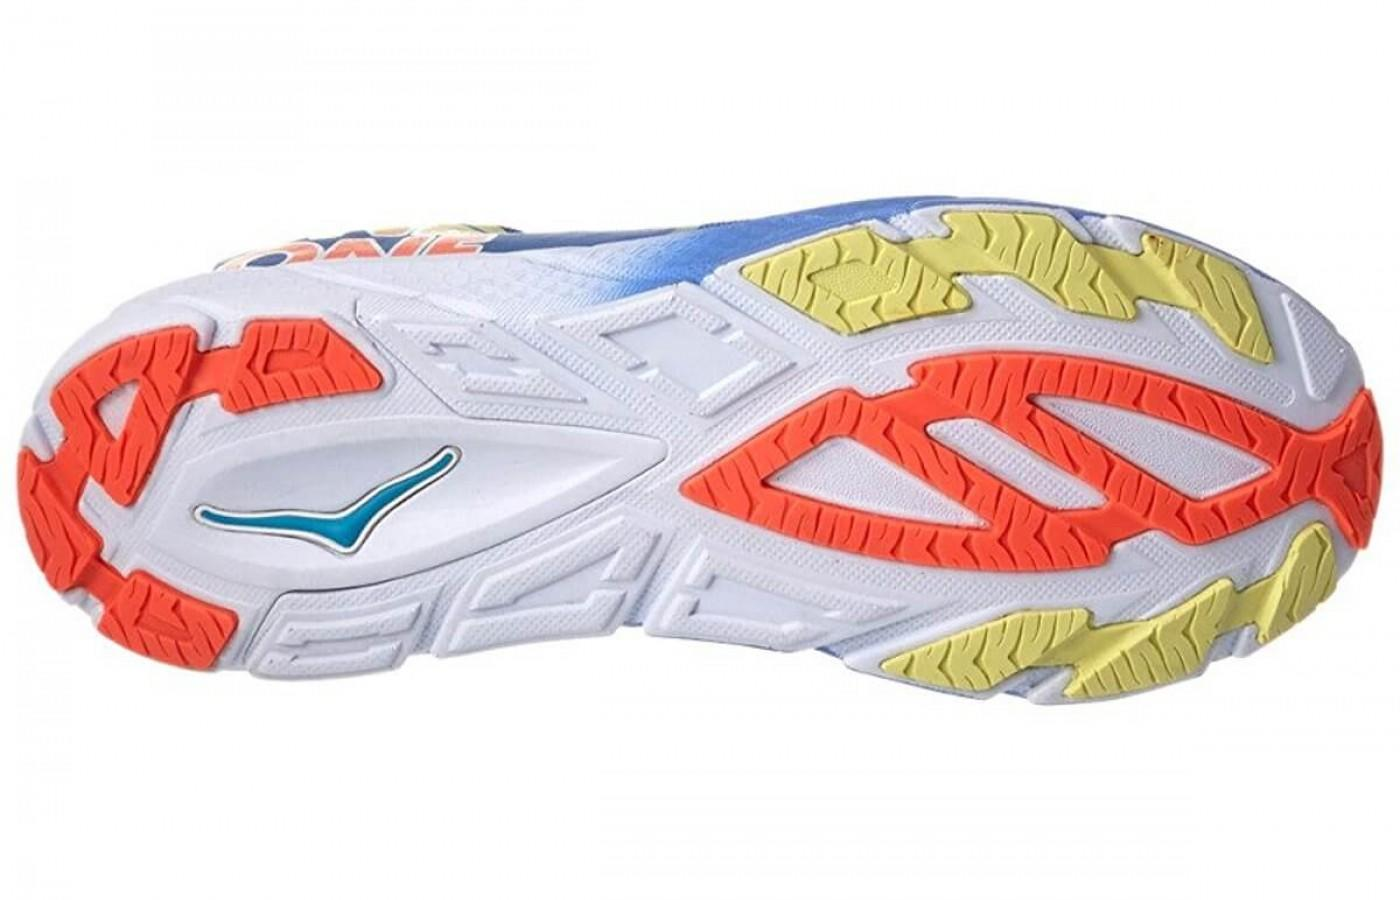 Hoka One One Tracer 2 has a durable outsole with great traction